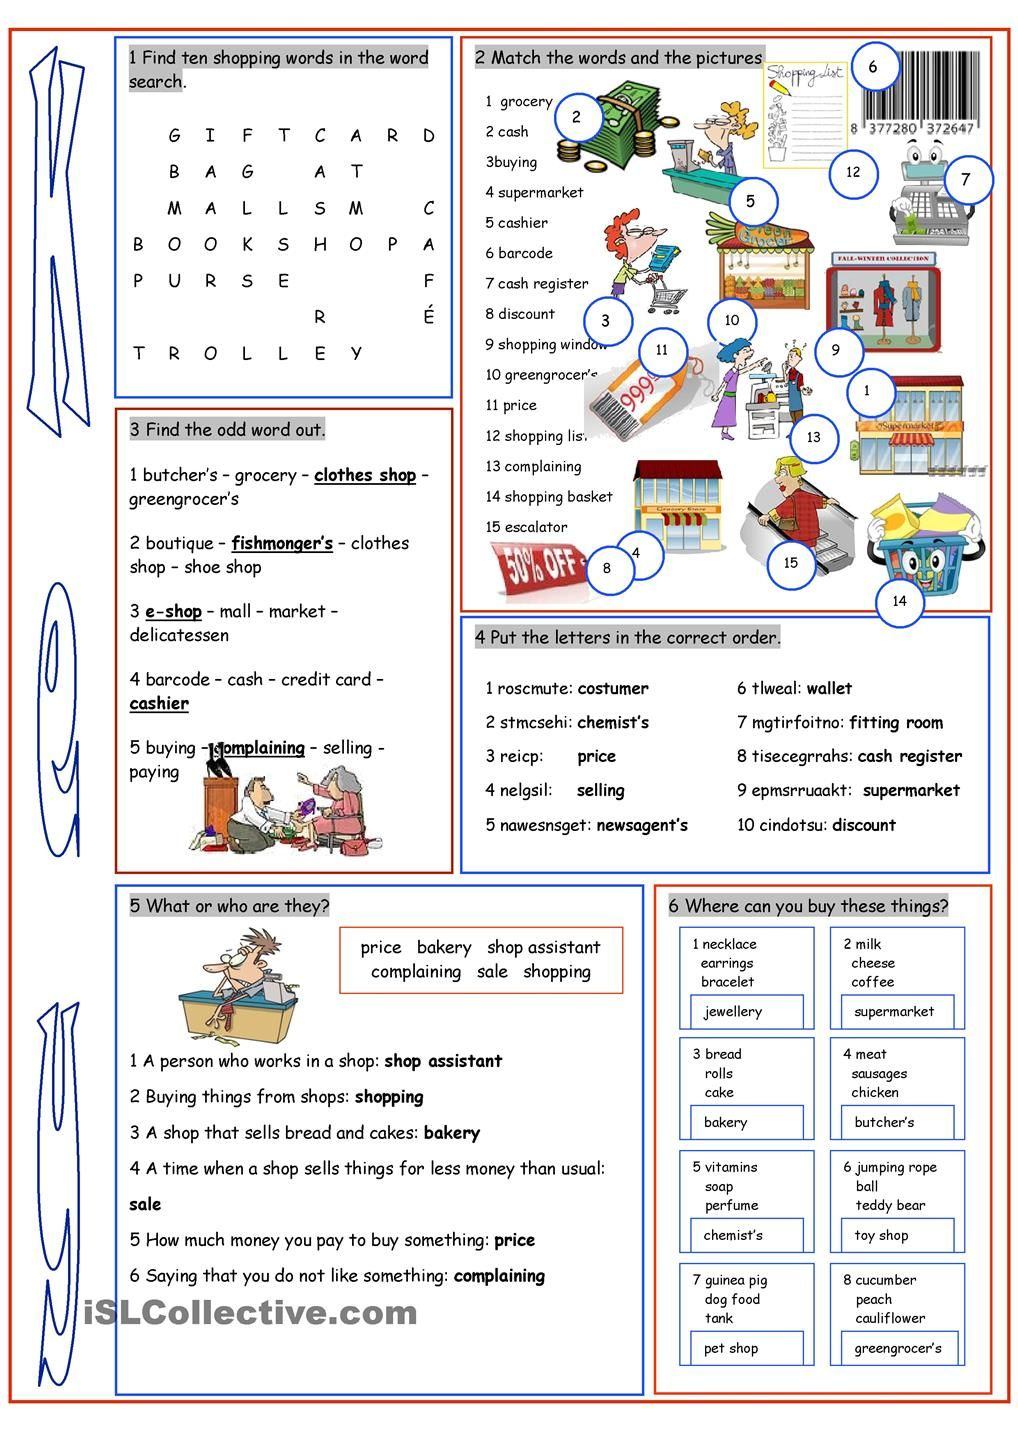 Solutions Worksheet Answers Word Shopping Vocabulary Exercises  Shopping  Pinterest  Vocabulary  Simplify Algebraic Fractions Worksheet Pdf with Whole Number Place Value Worksheets Excel Worksheet On Practisingreinforcing Shopping Vocabulary Math Printable Worksheets Grade 3 Excel